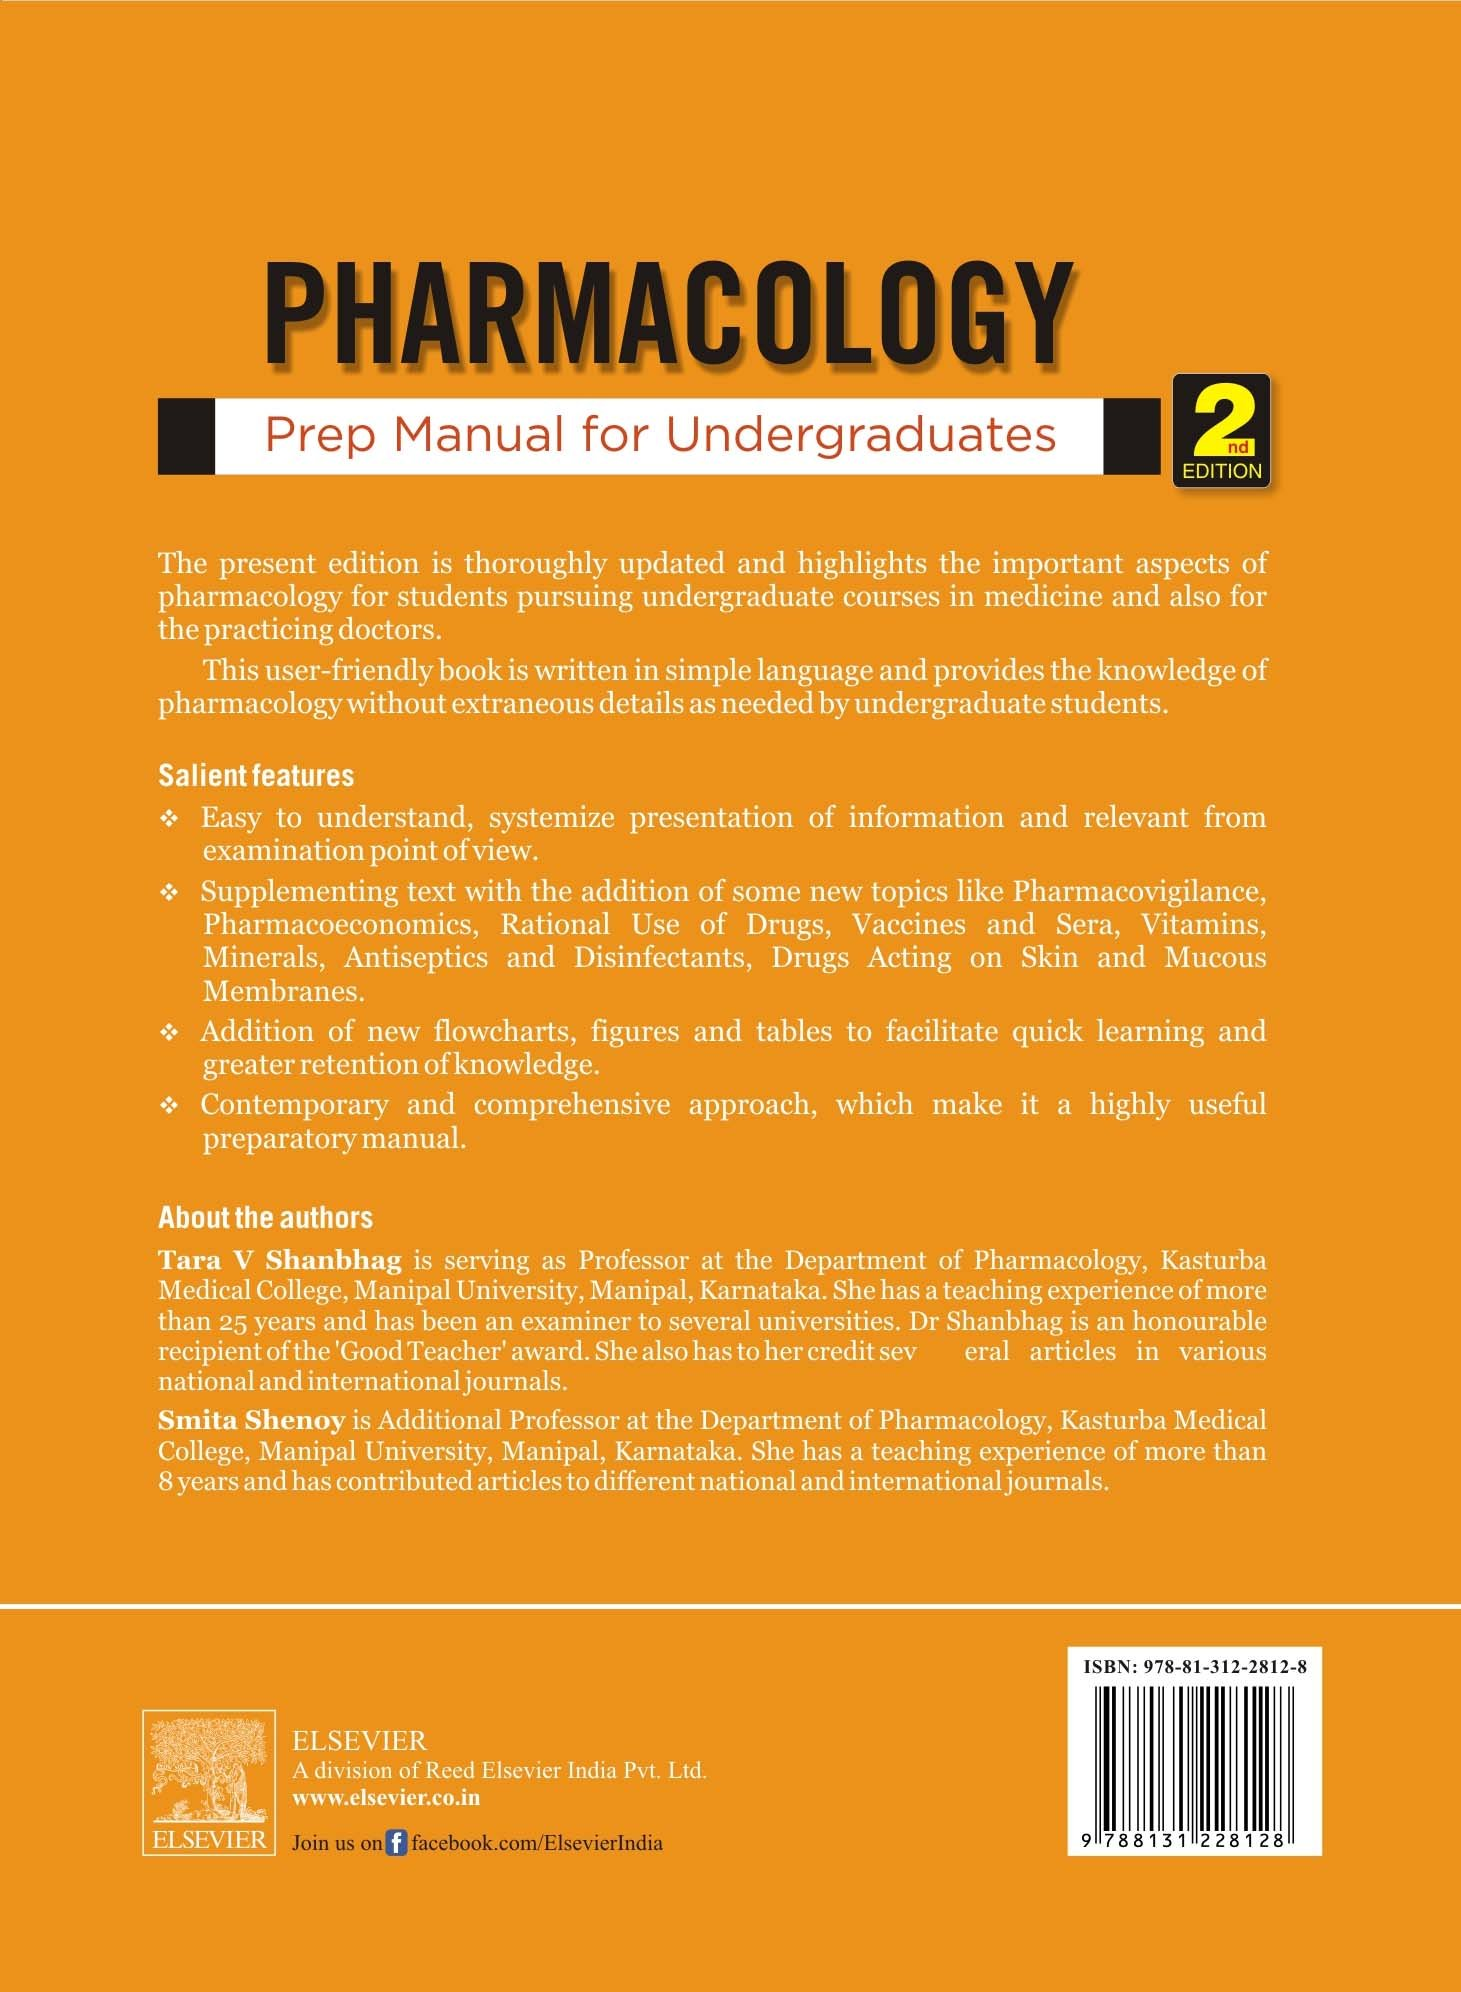 buy pharmacology prep manual for undergraduates old edition buy pharmacology prep manual for undergraduates old edition book online at low prices in pharmacology prep manual for undergraduates old